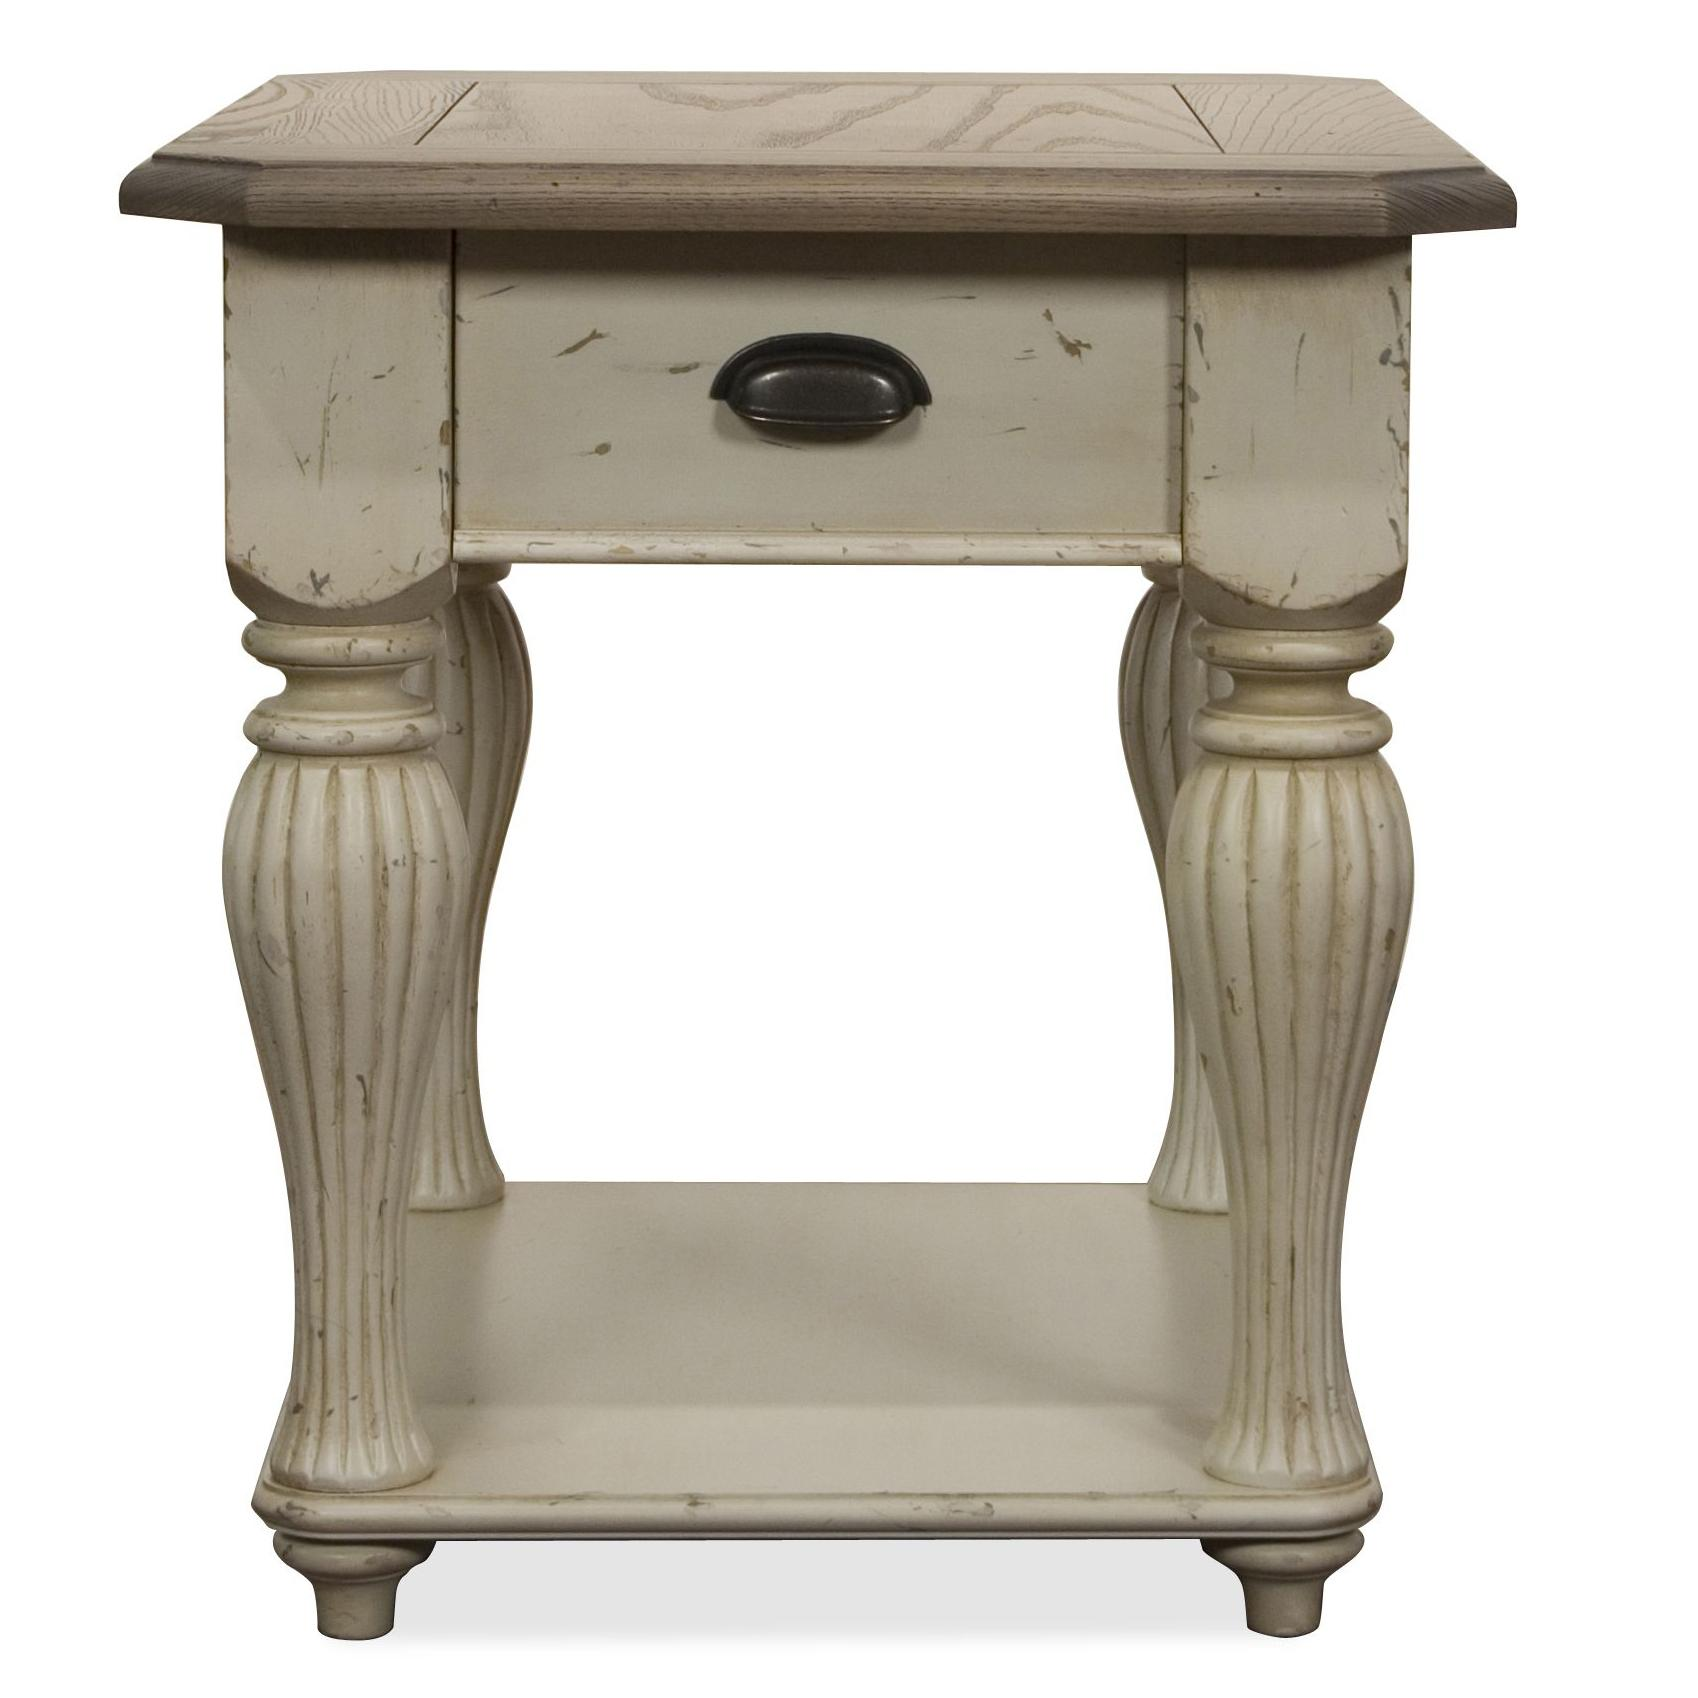 Riverside Furniture Coventry Two Tone Rectangular End Table - Item Number: 32509